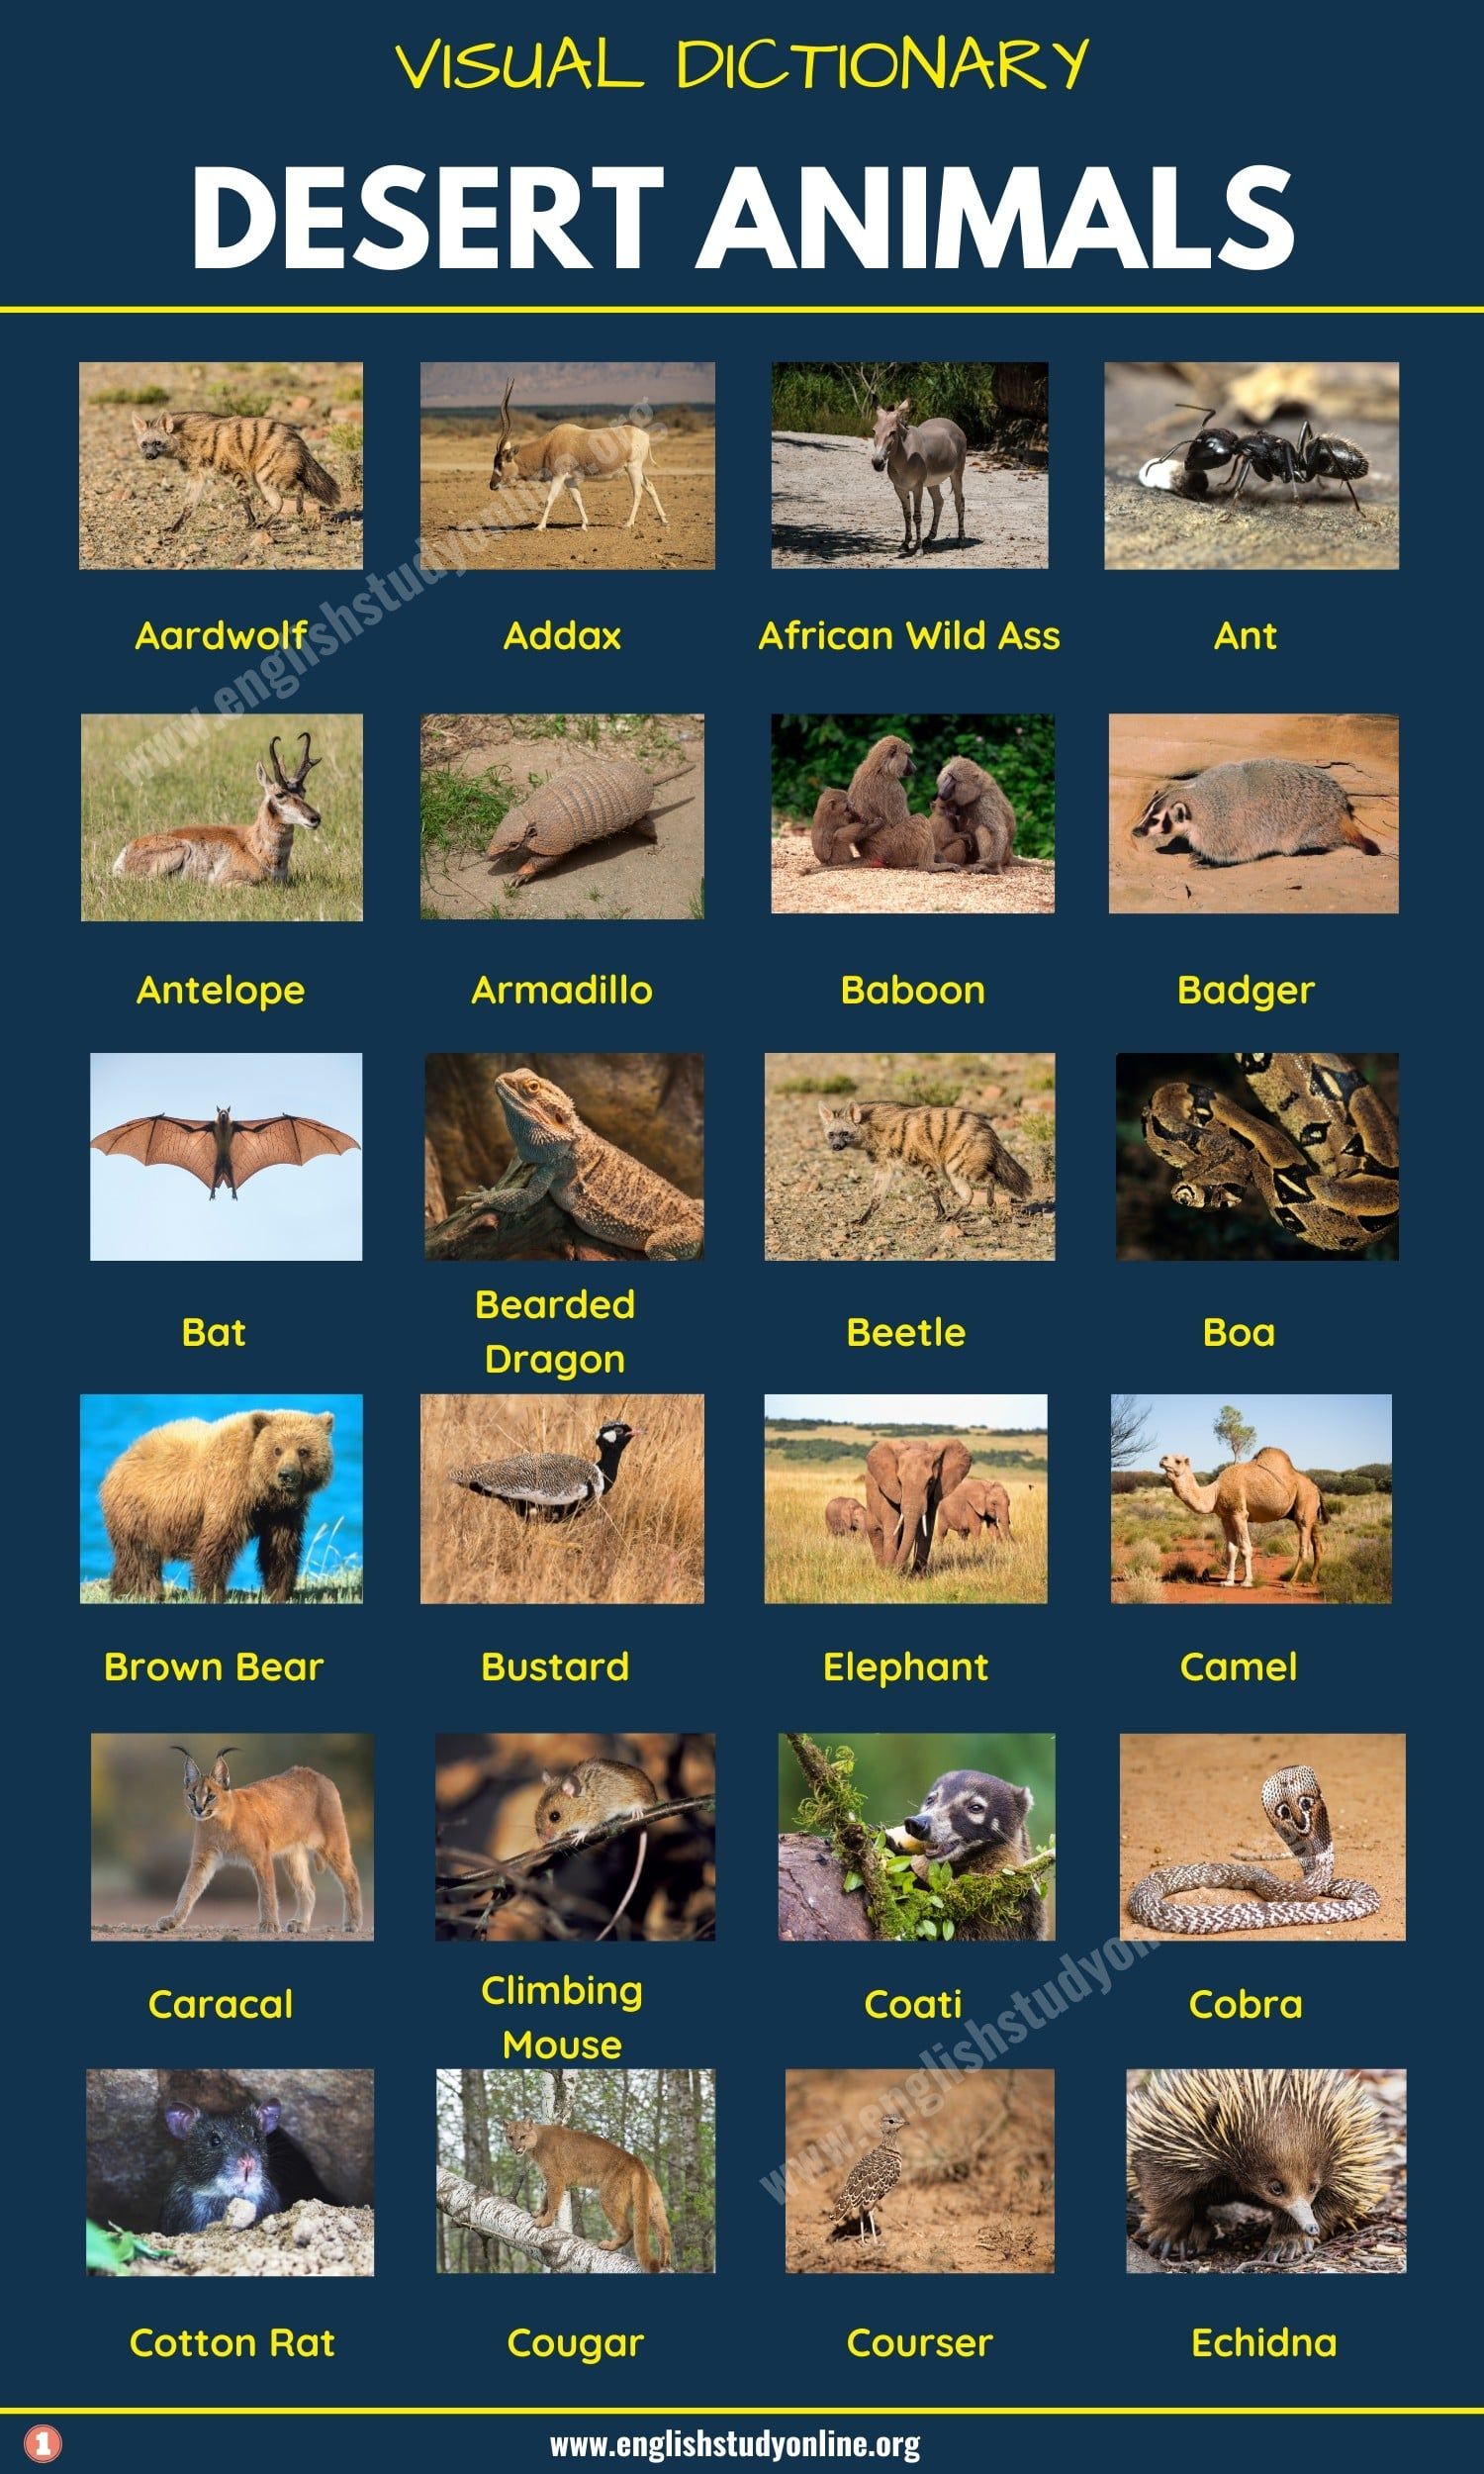 Desert Animals: List of 60+ Animals That Live in the Desert with Examples 2